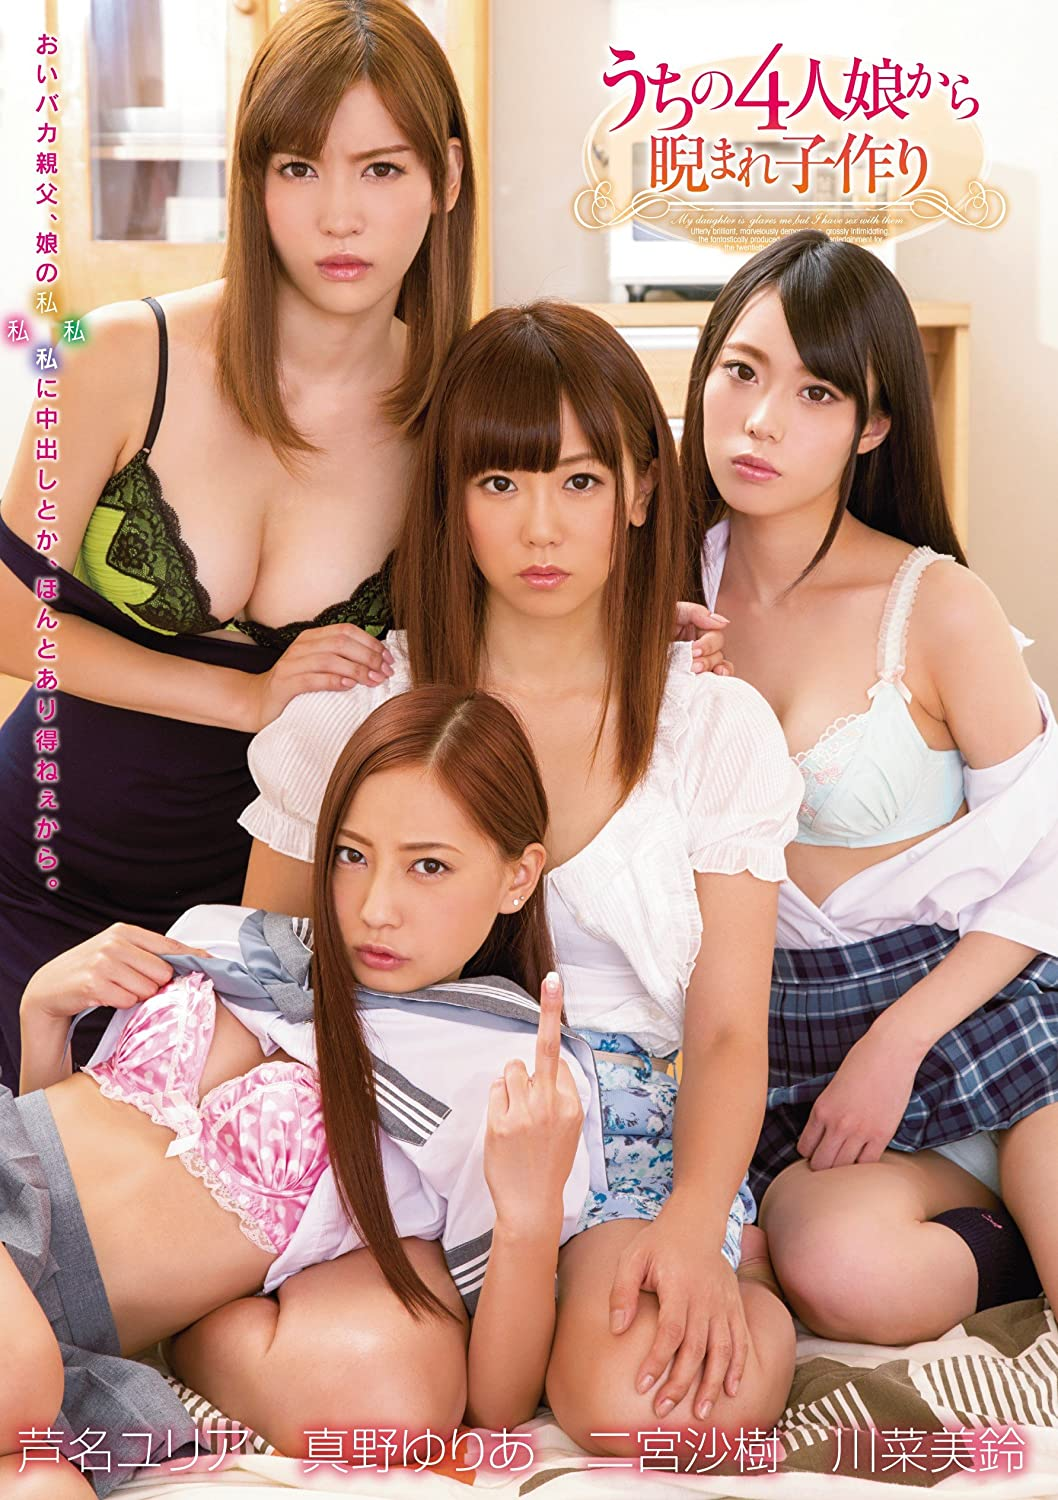 [ZUKO-065] (English subbed) Resentful Babymaking With My Four Daughters